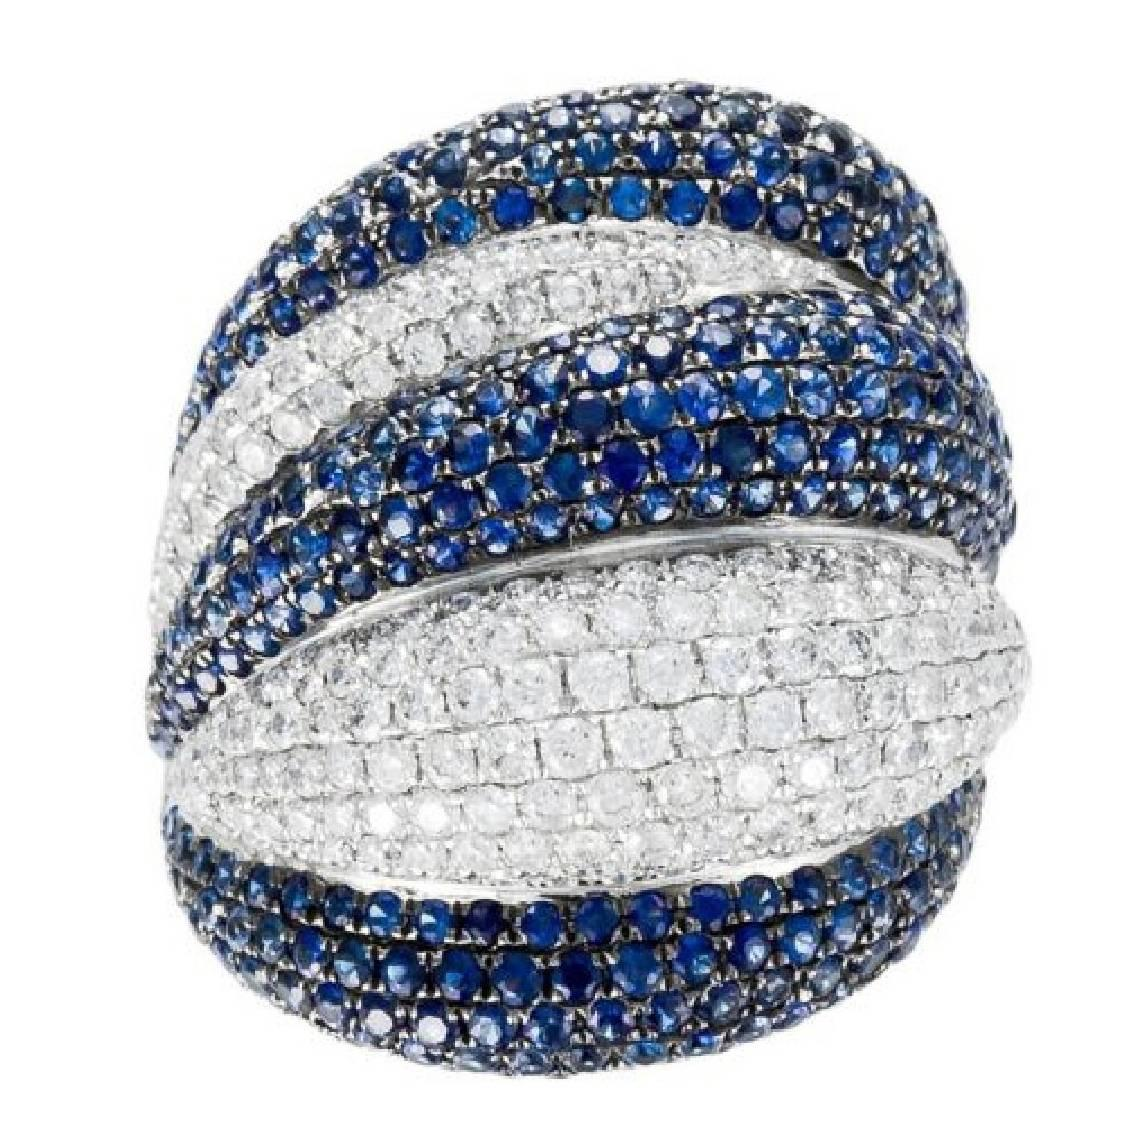 18 Karat White Gold Sapphire and Diamond Dome Ring